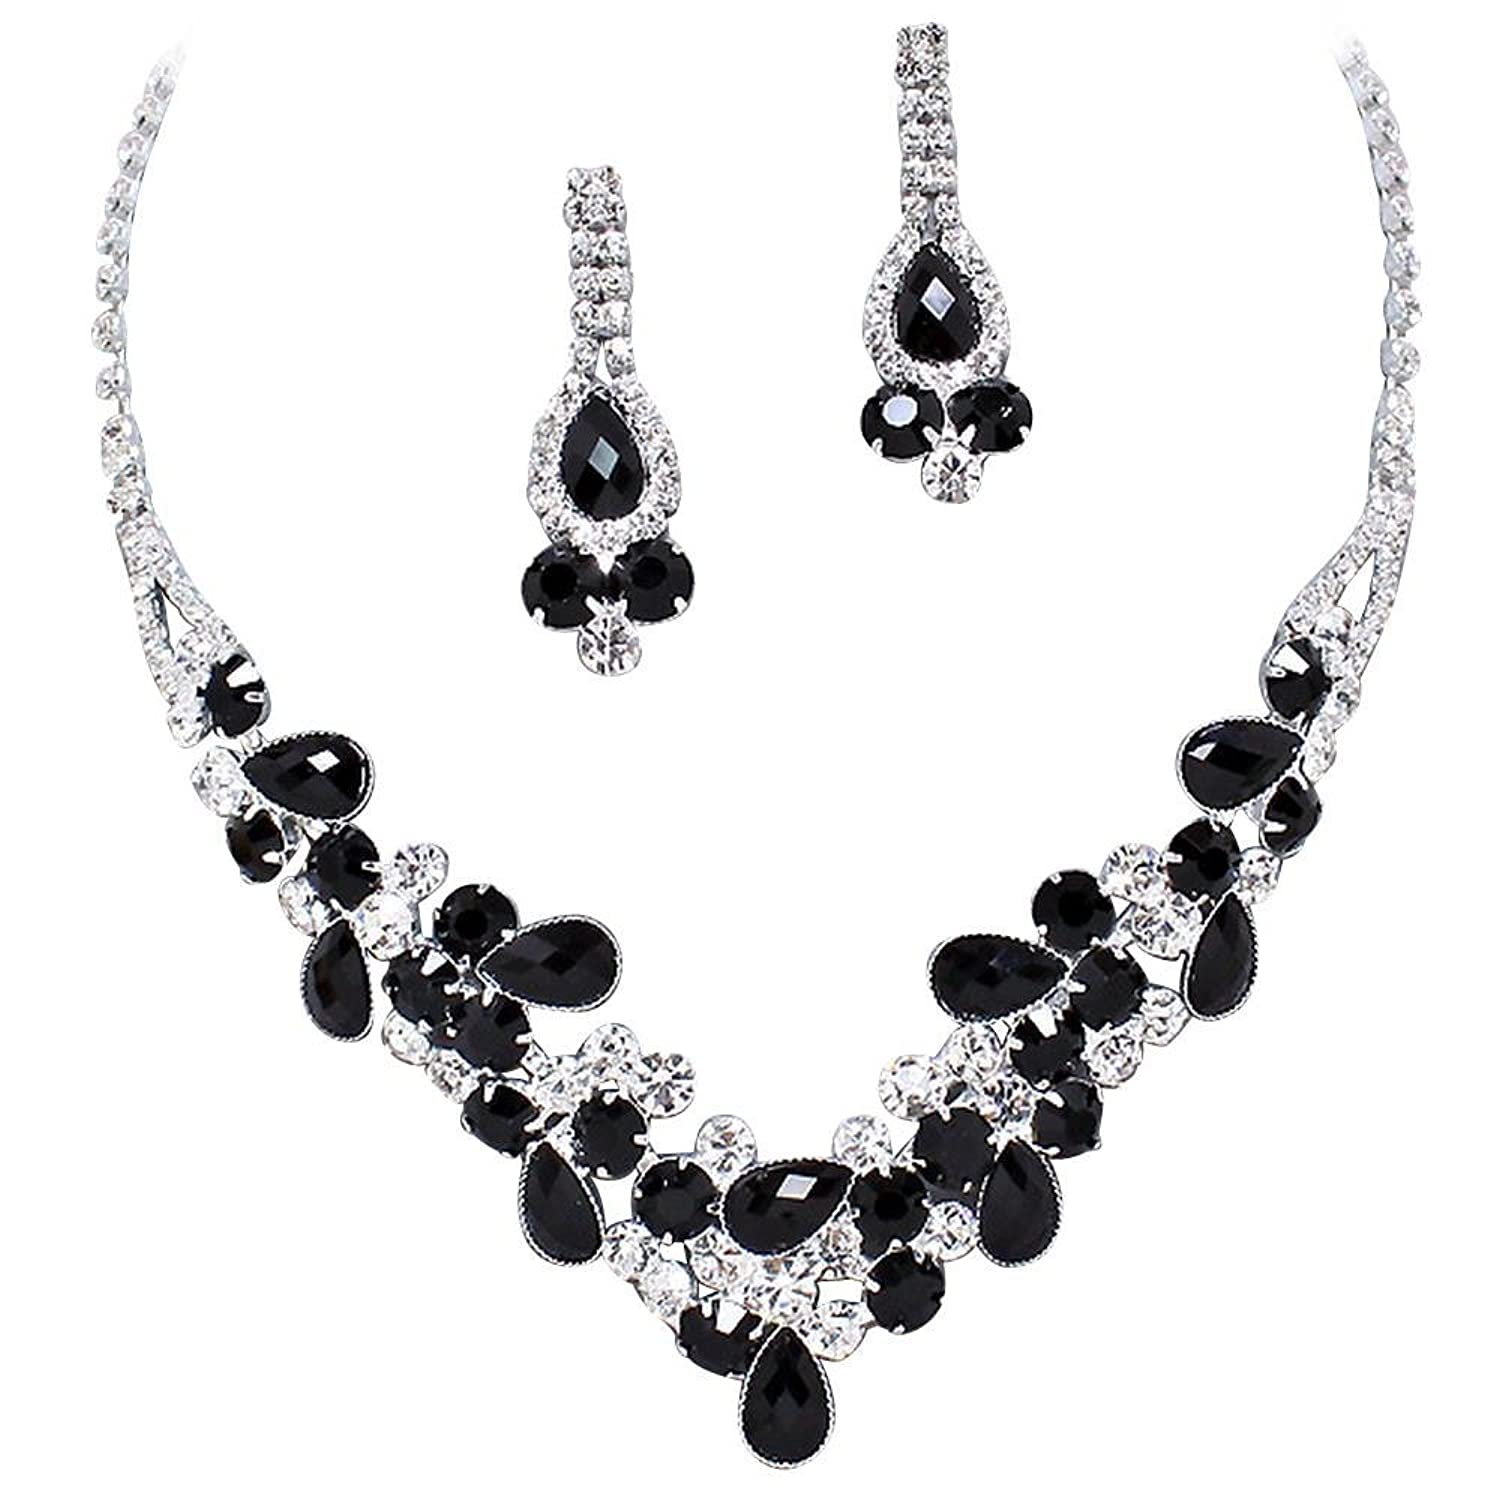 Amazon elegant black v shaped garland prom bridesmaid evening amazon elegant black v shaped garland prom bridesmaid evening necklace set k1 jewelry junglespirit Image collections